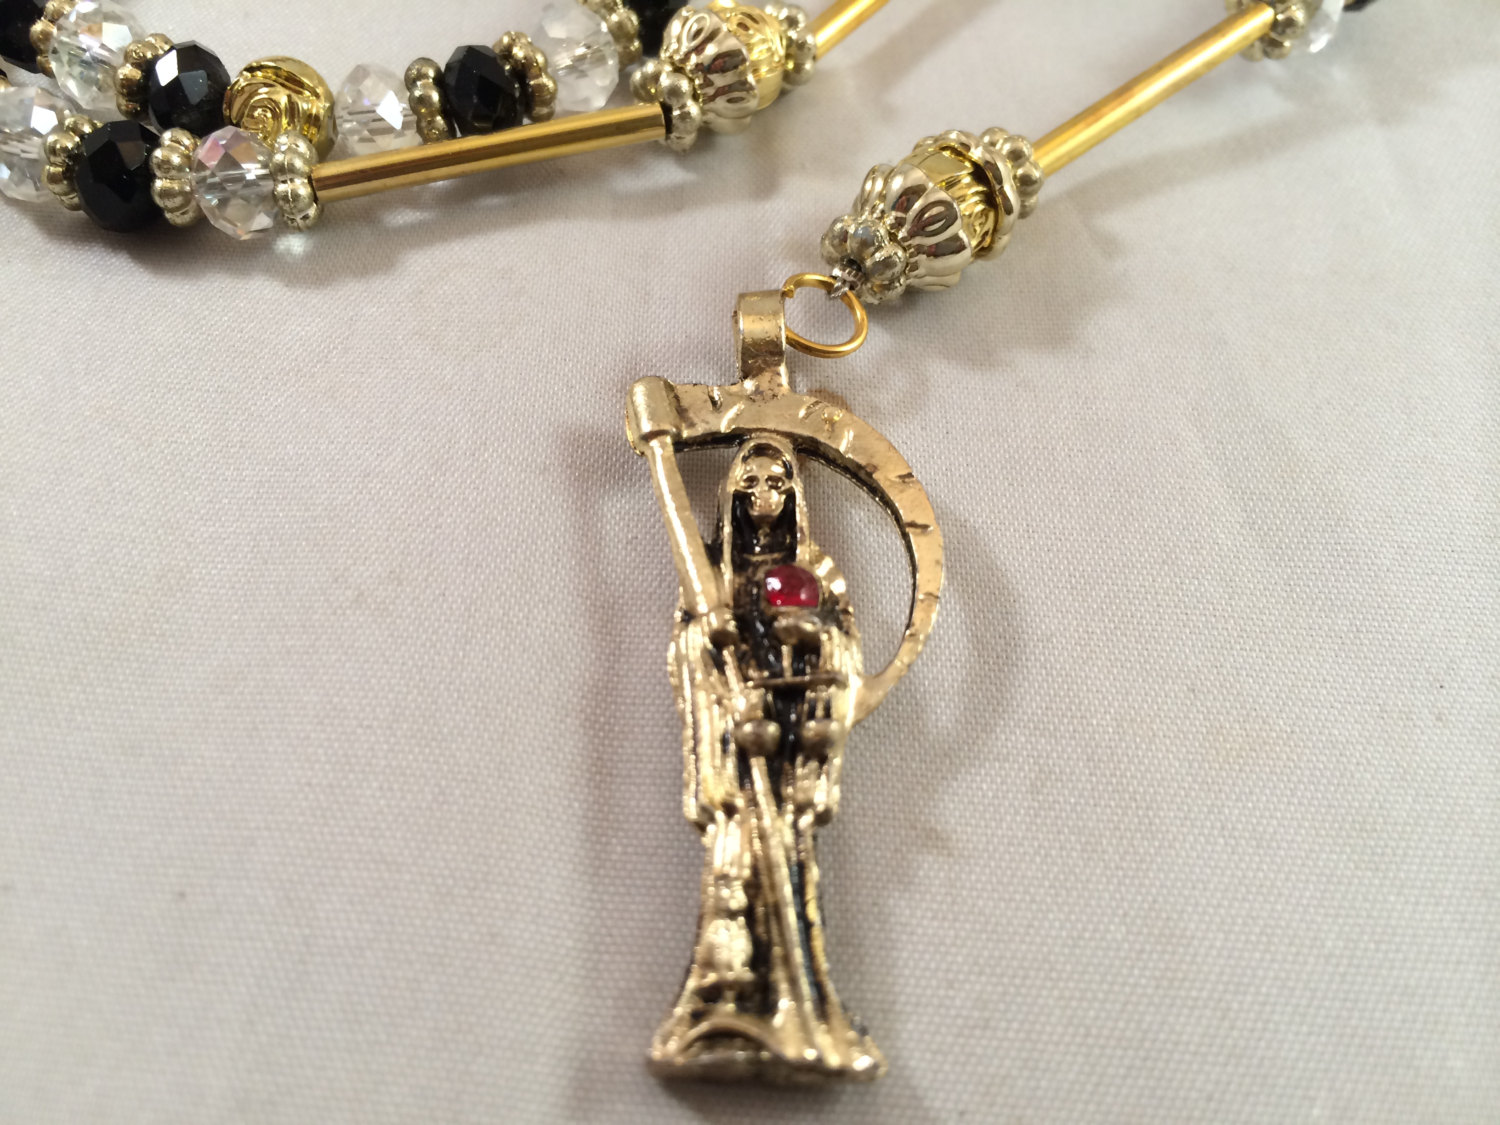 Santa muerte rosary necklace gold black clear beads rosario il fullxfull639027392 ti1e small mozeypictures Images